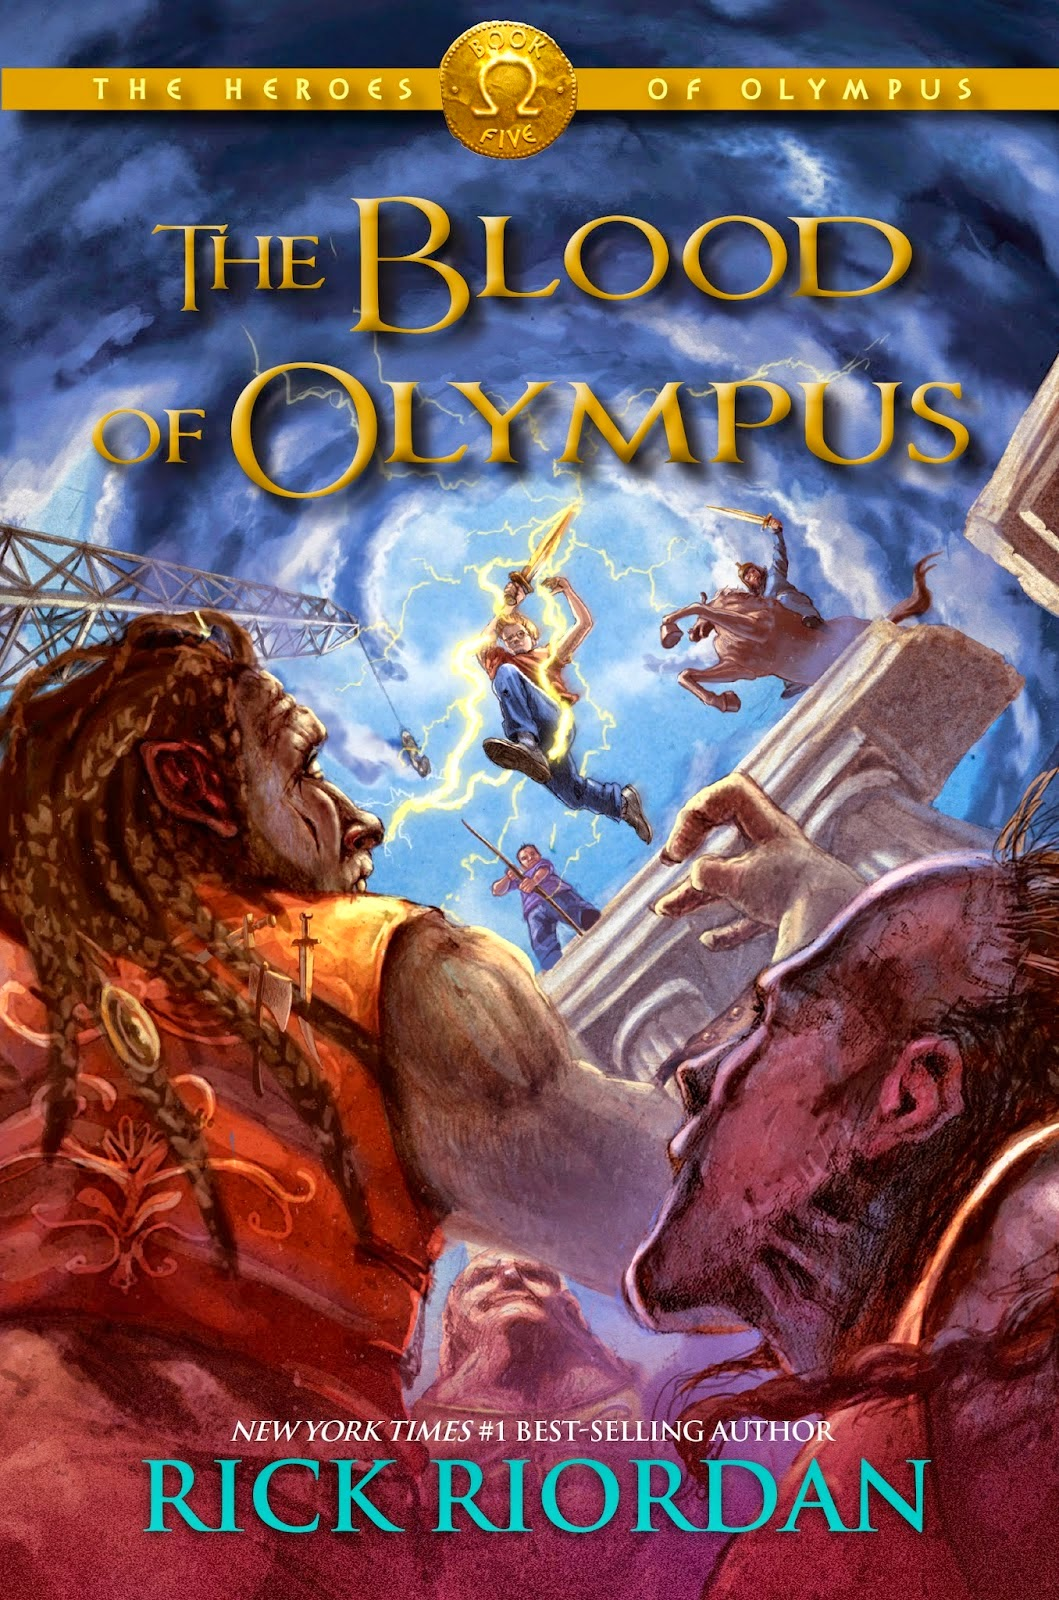 Portada estadounidense de The Blood of Olympus